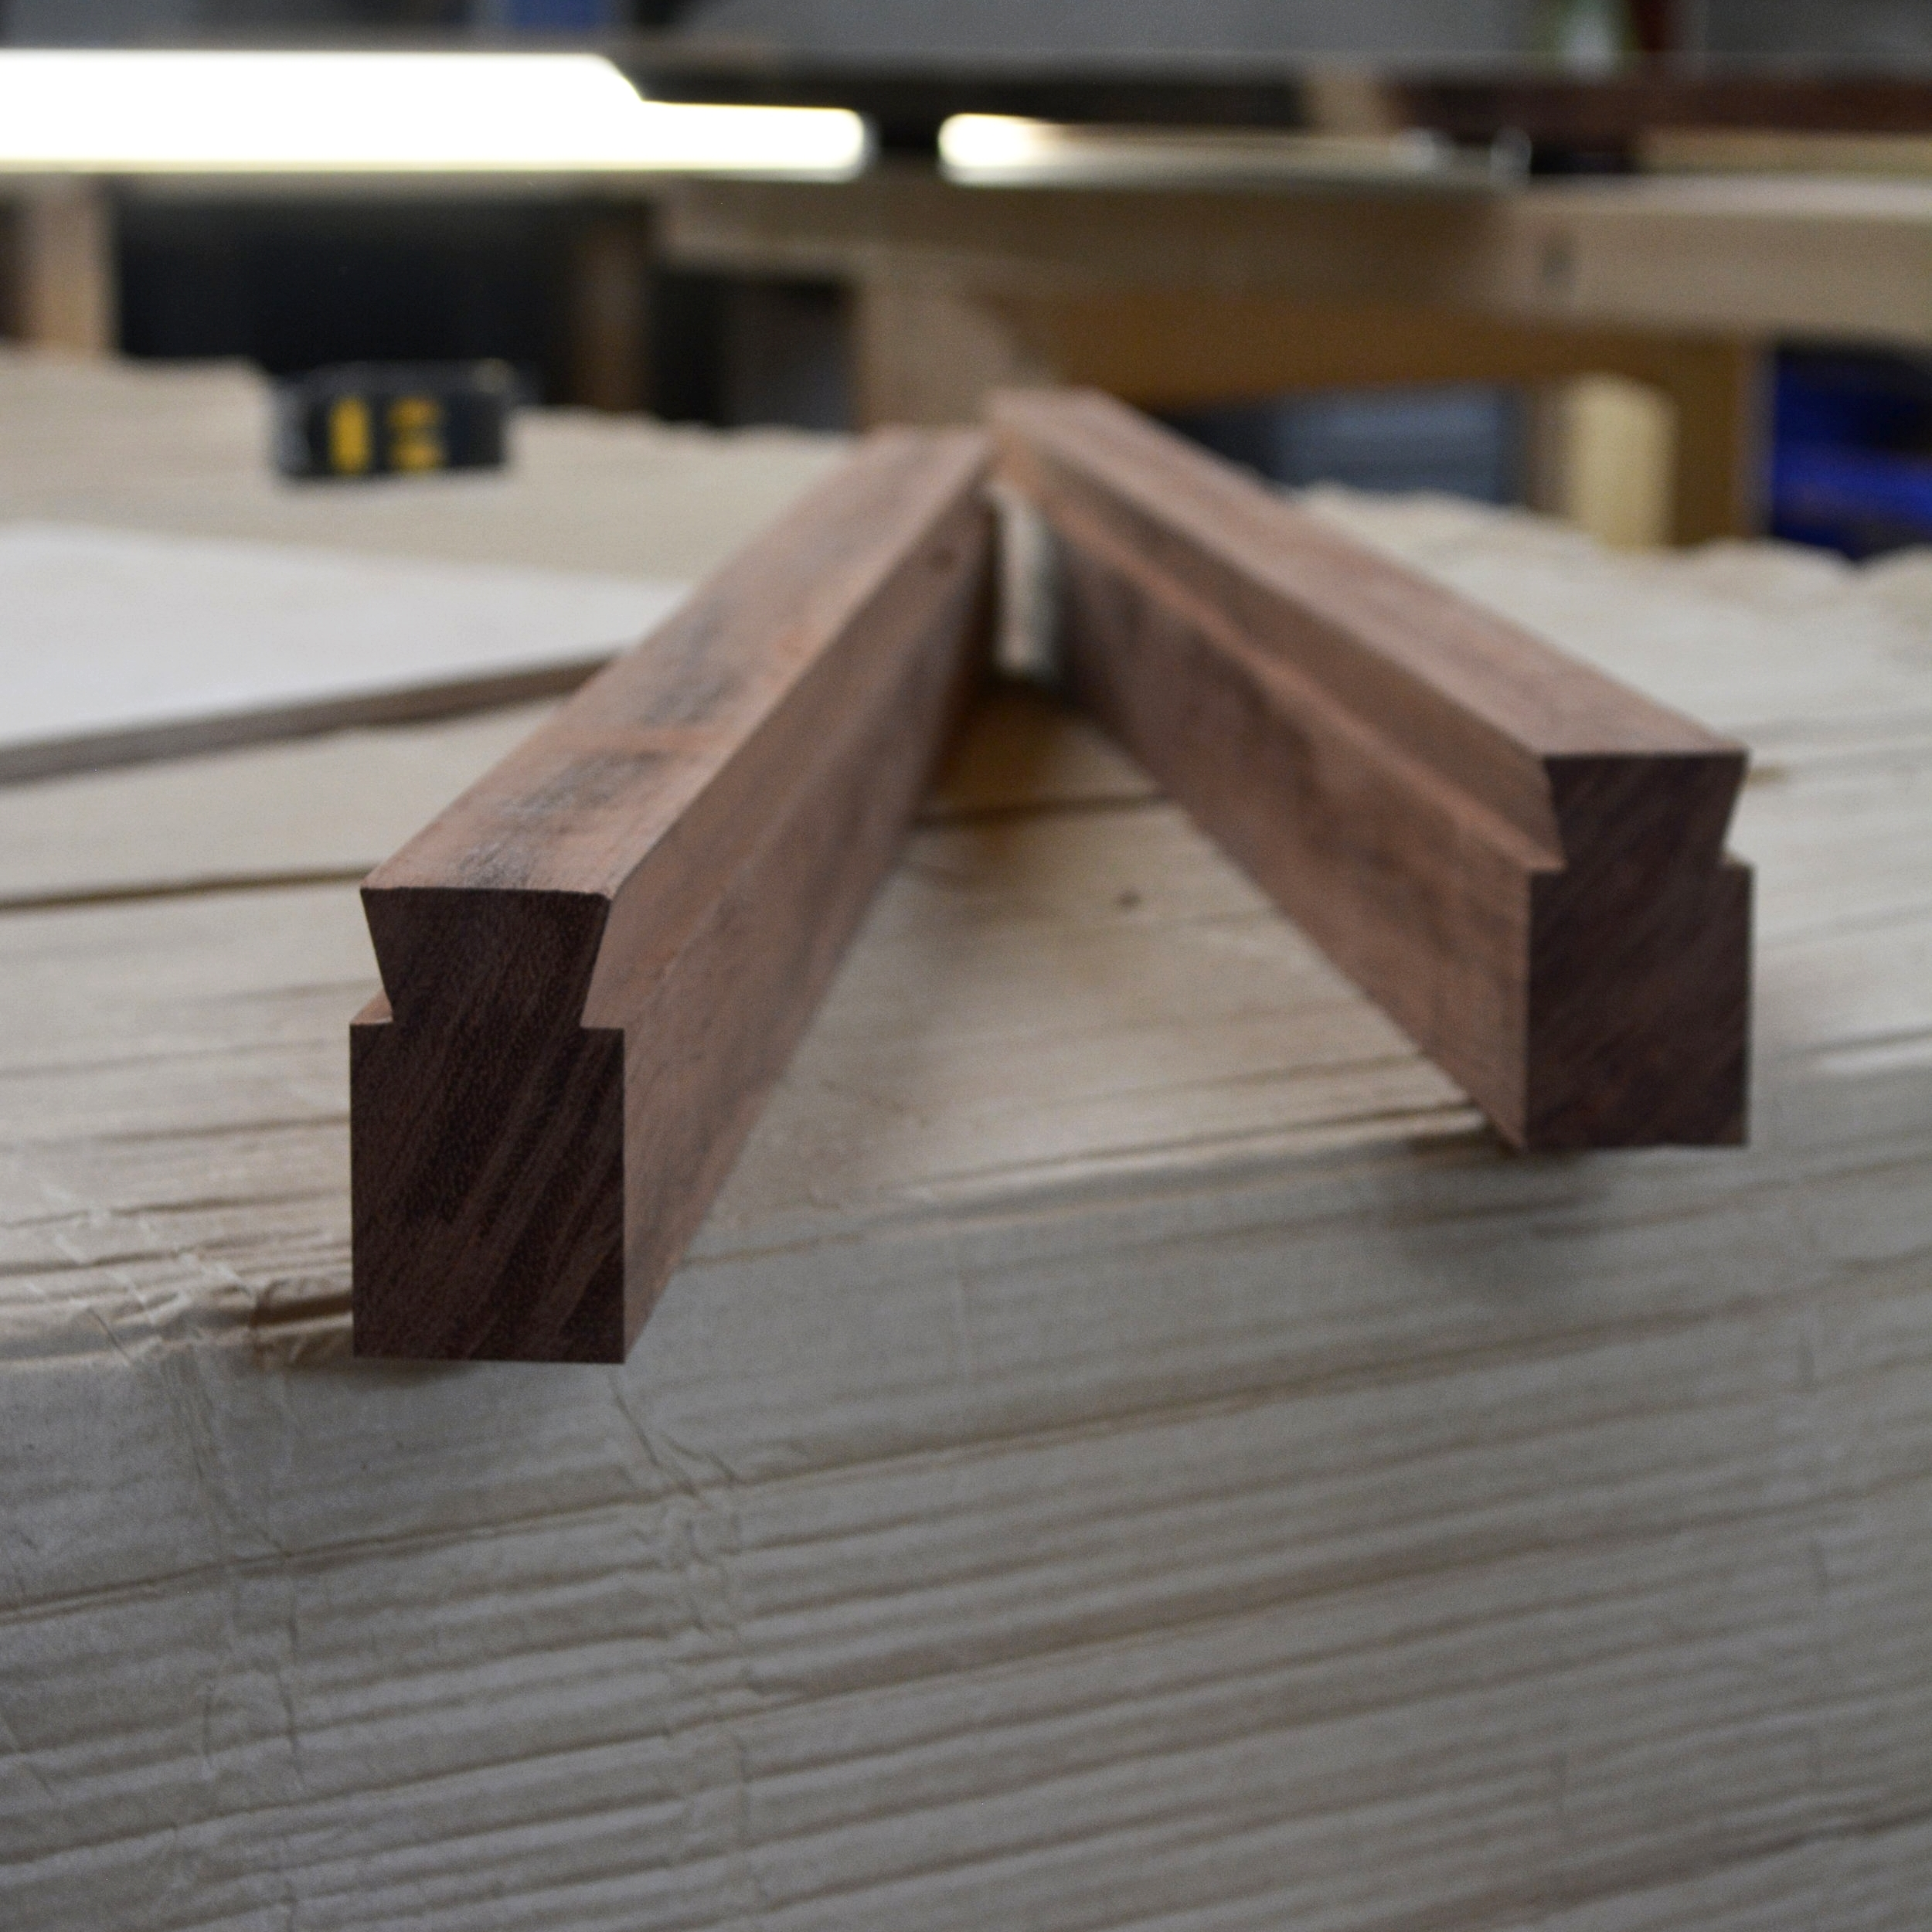 - While we take on all forms of commissions, we specialise in live edge pieces using large wood slabsWhen producing these large pieces, we use a traditional Japanese technique to stabilise the wood to prevent it from twisting and warping- allowing it to shrink and expand with seasonal changes whilst ensuring the longevity of finished piece[ pictured - sliding dovetail rail used to control seasonal movement of wood slabs ]